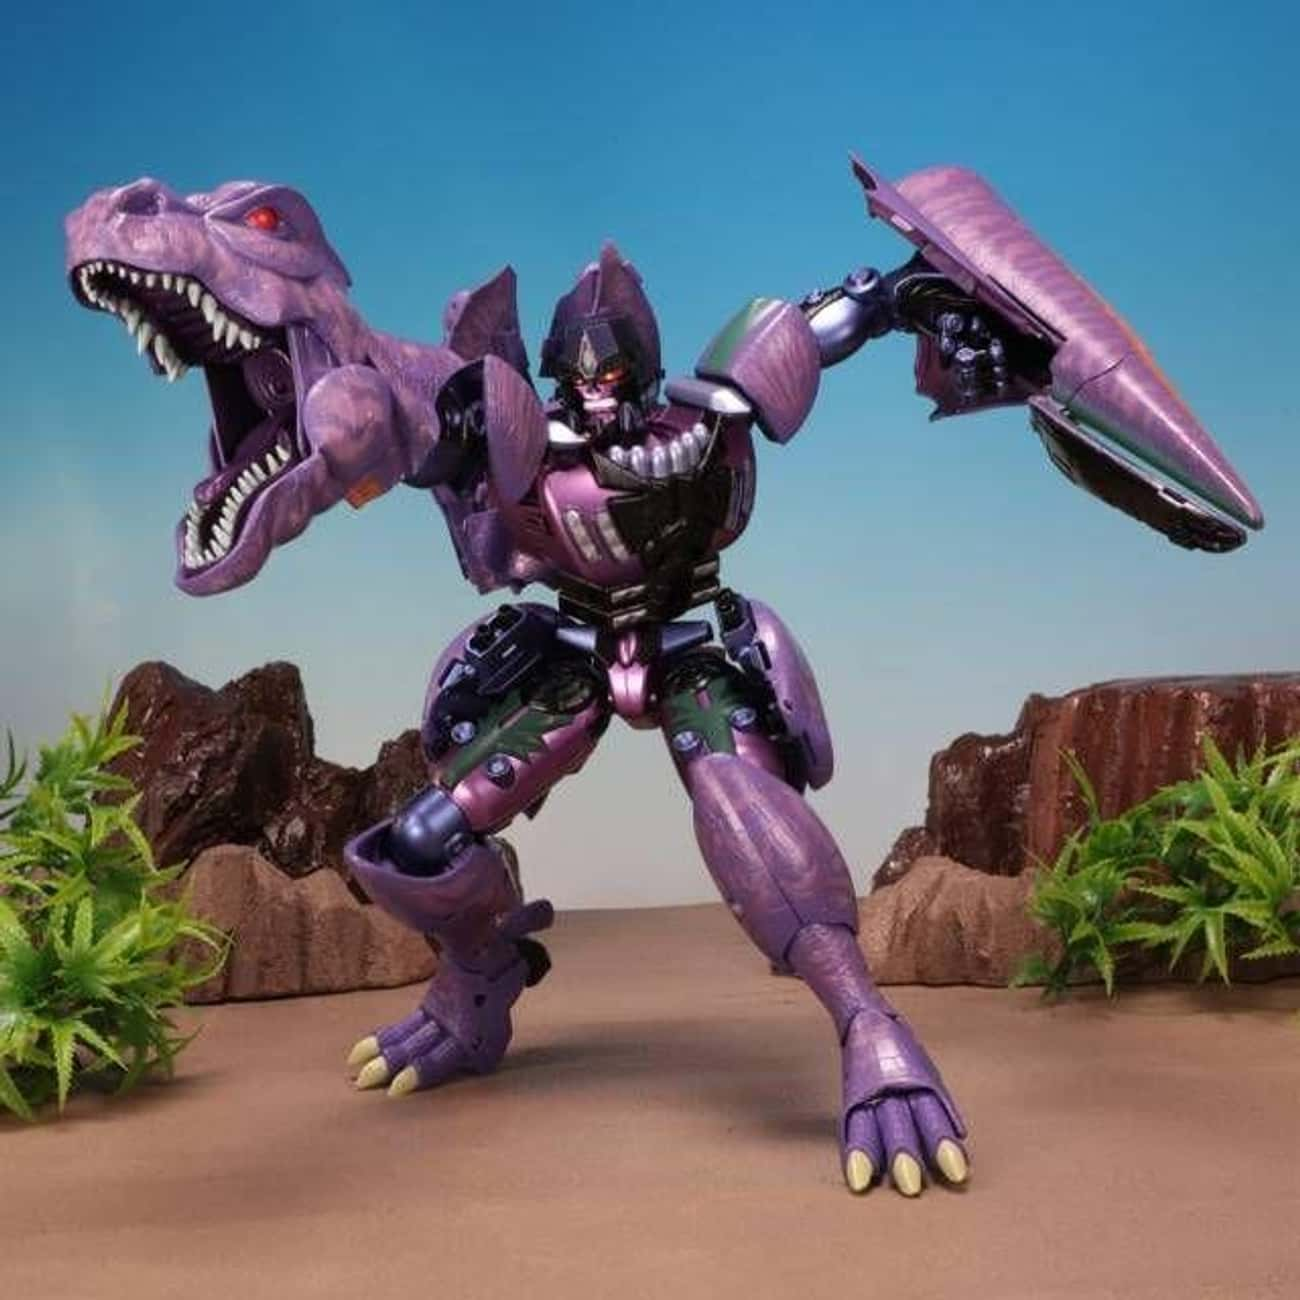 Masterpiece Beast Wars Megatro is listed (or ranked) 3 on the list The 20 Best Megatron Toys Ever Made, Ranked